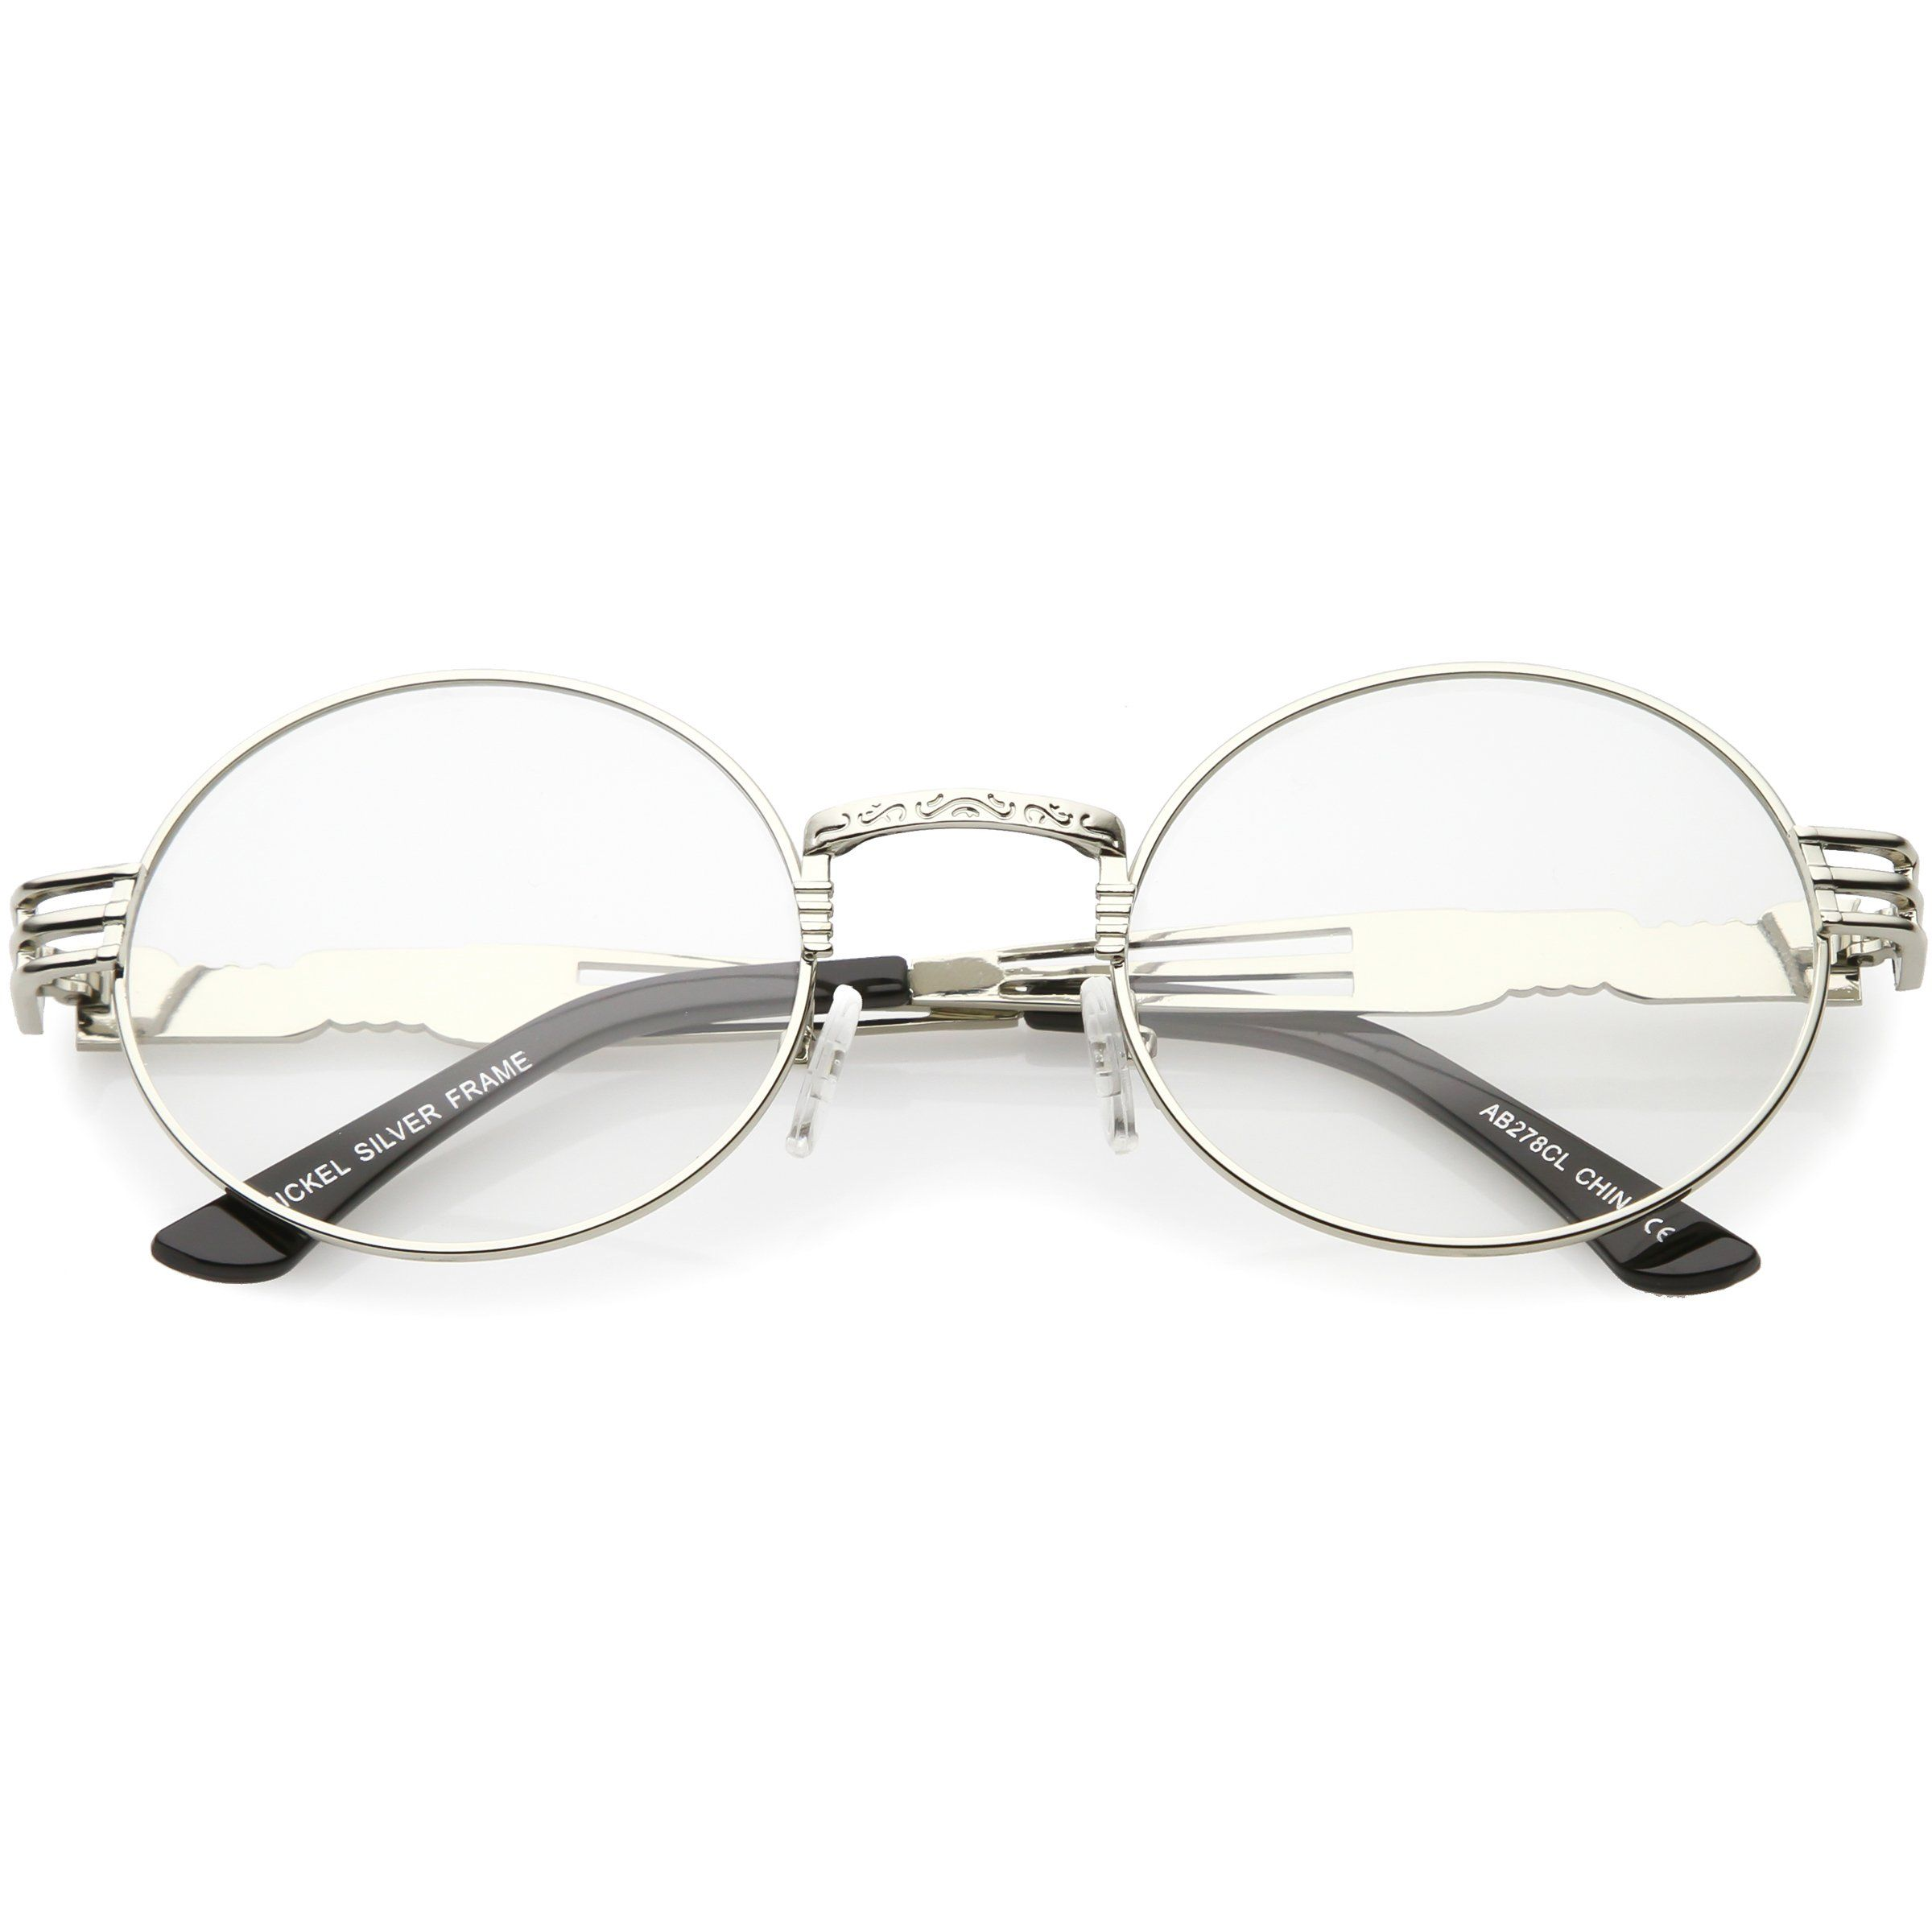 006a2f6871 Retro Round Clear Lens Engraved Metal Steampunk Flat Lens Glasses C481